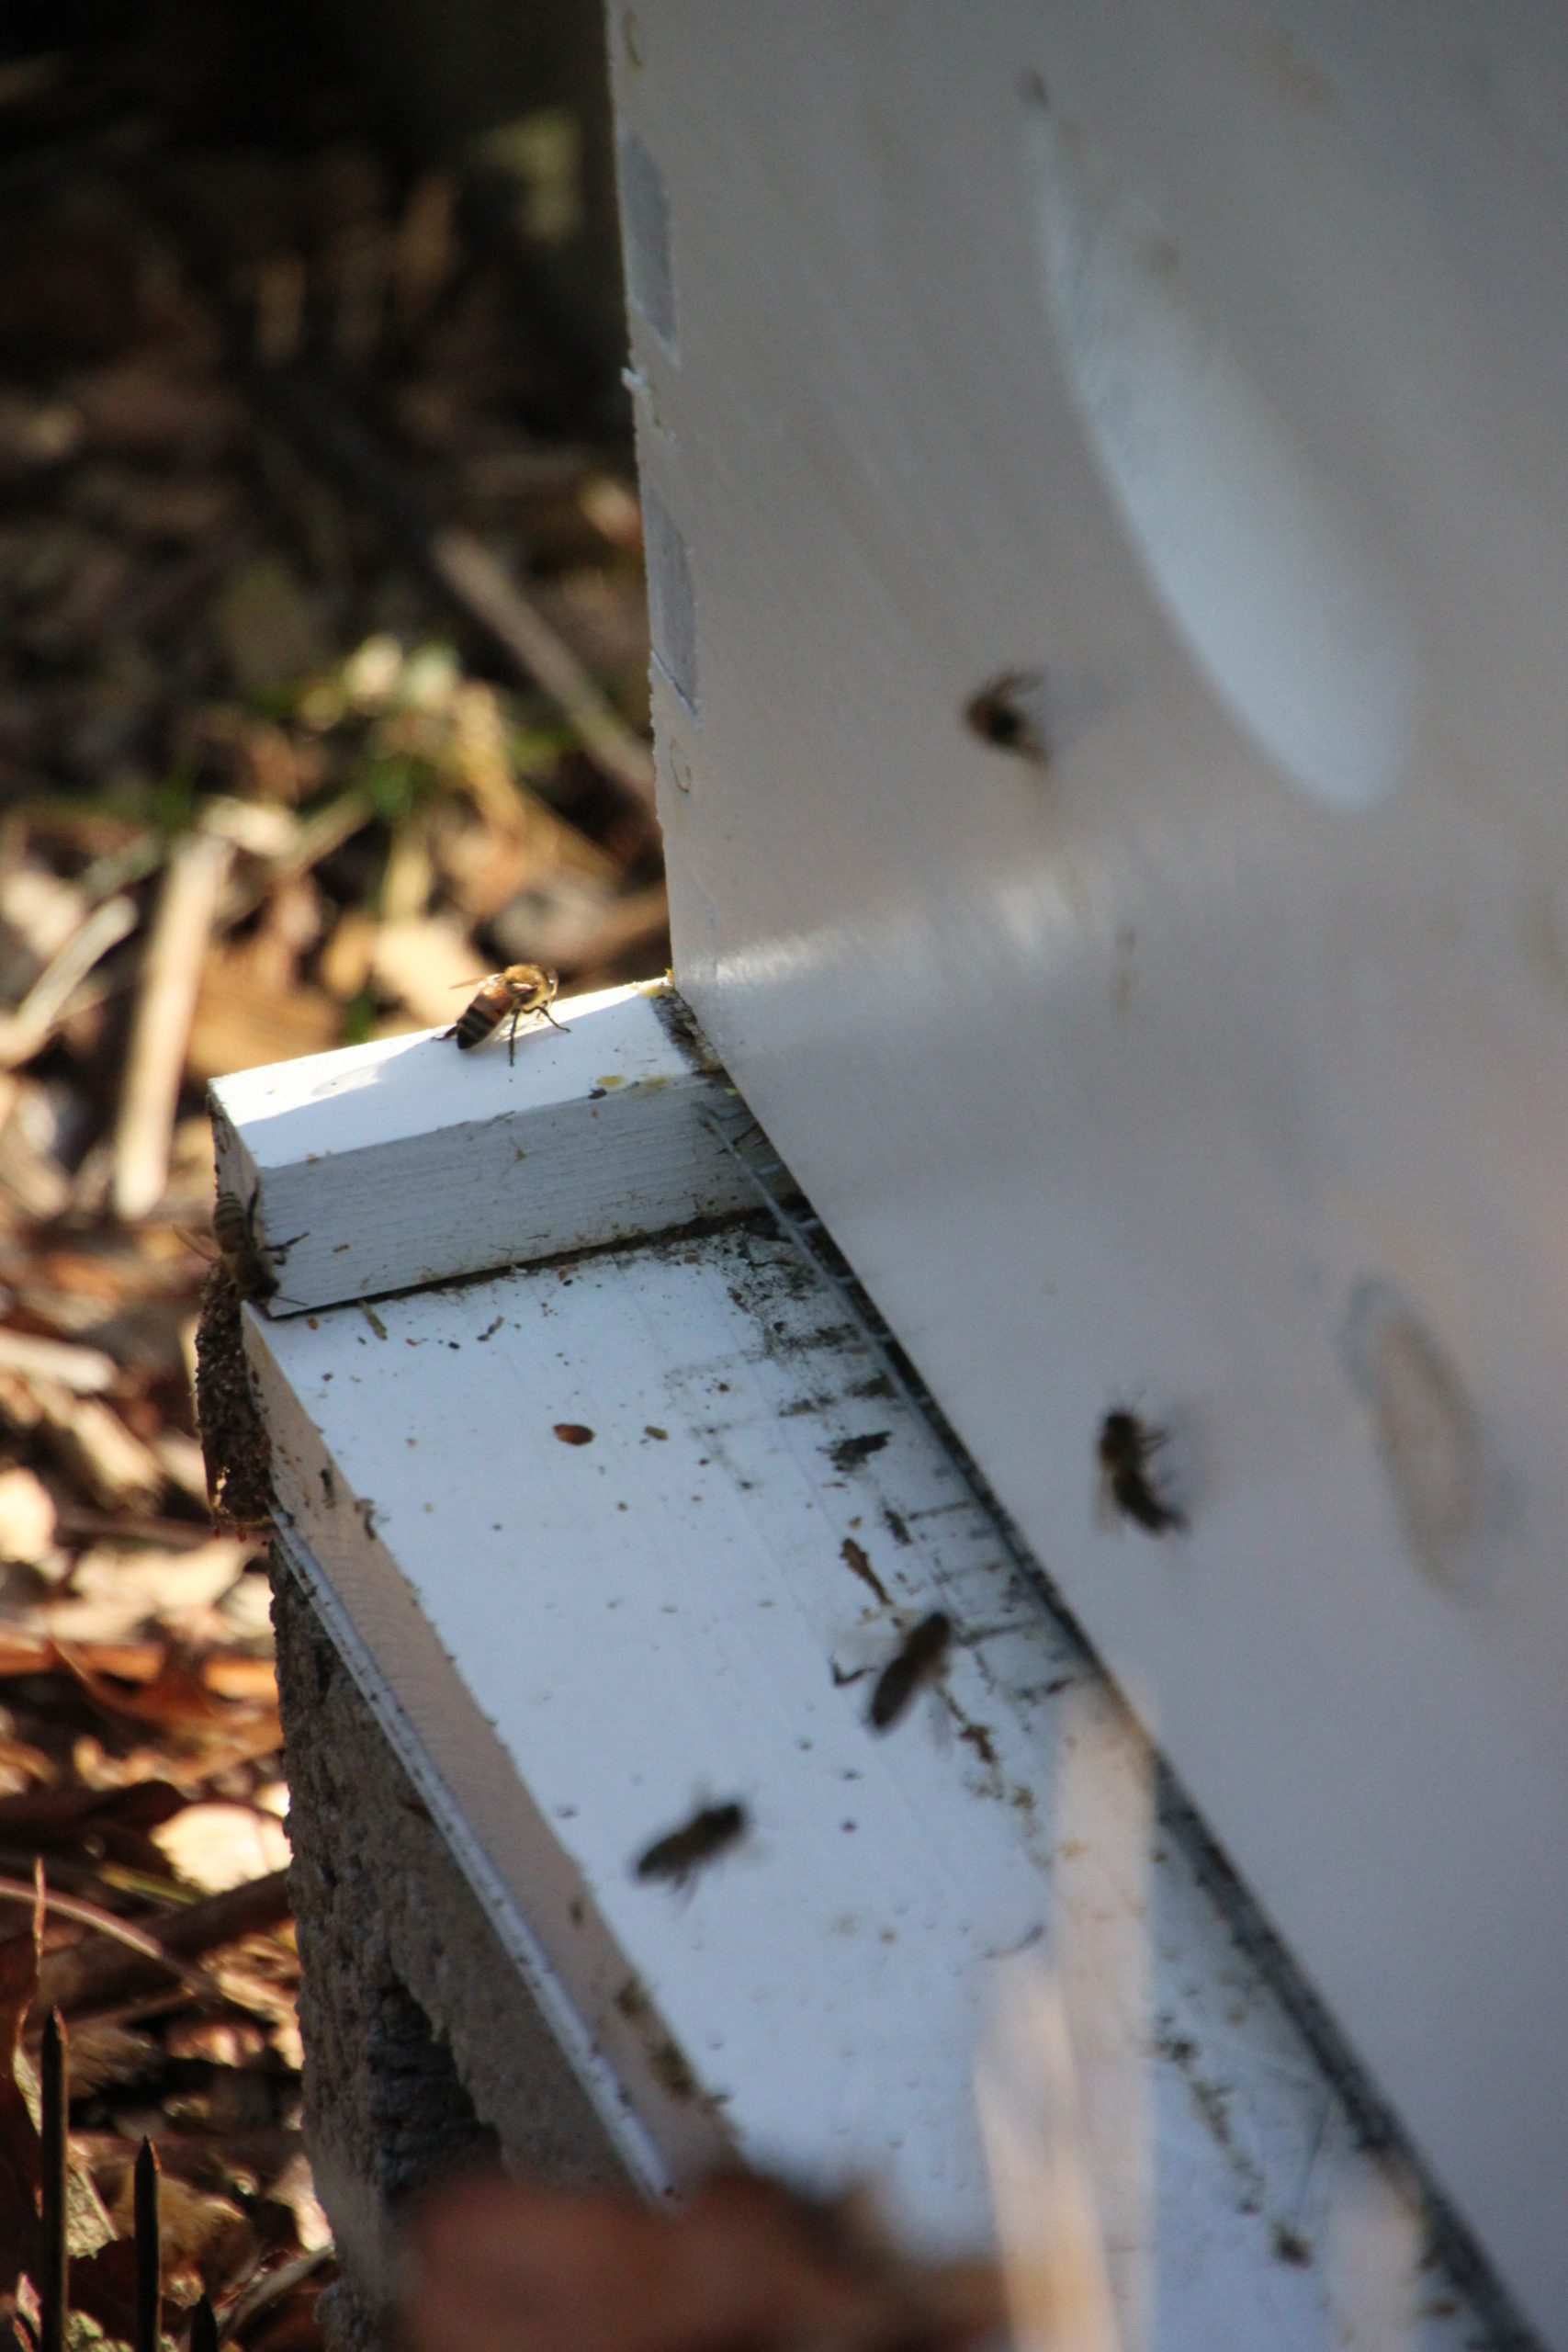 bees emerged from the hive